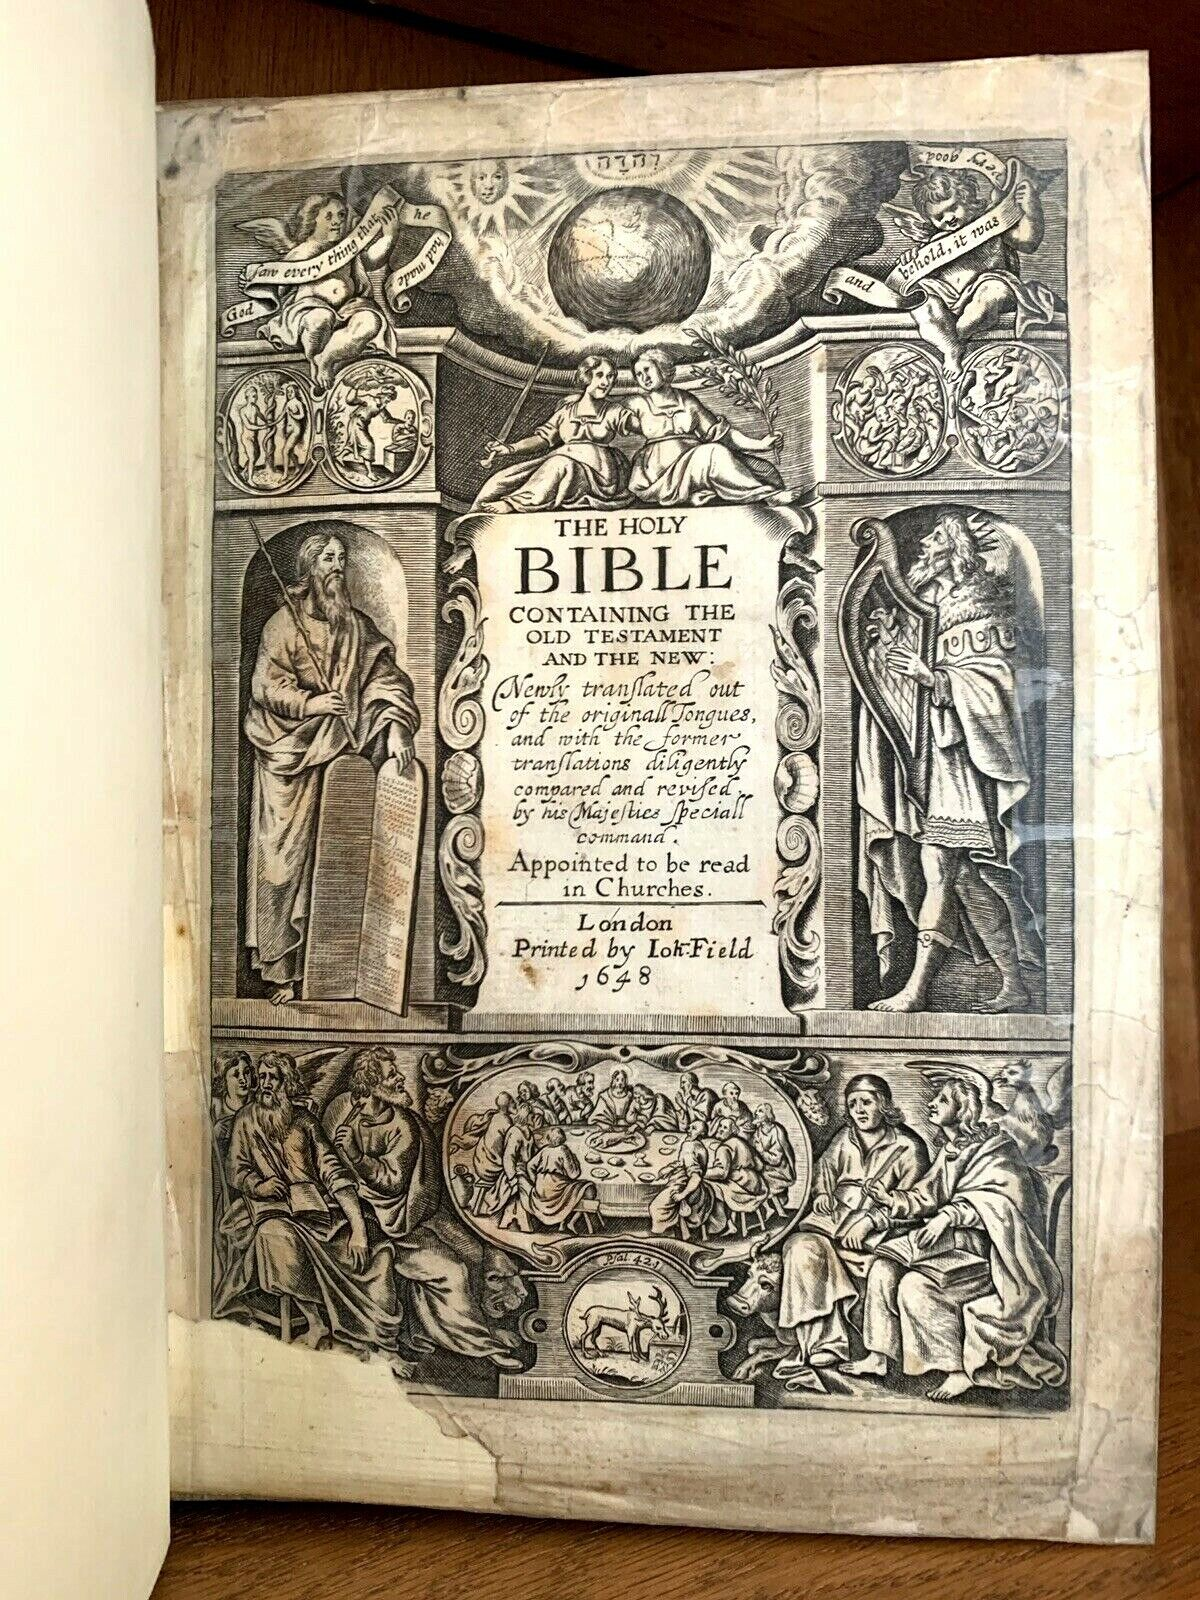 viaLibri ~ 1648 KING JAMES BIBLE - Containing the Old